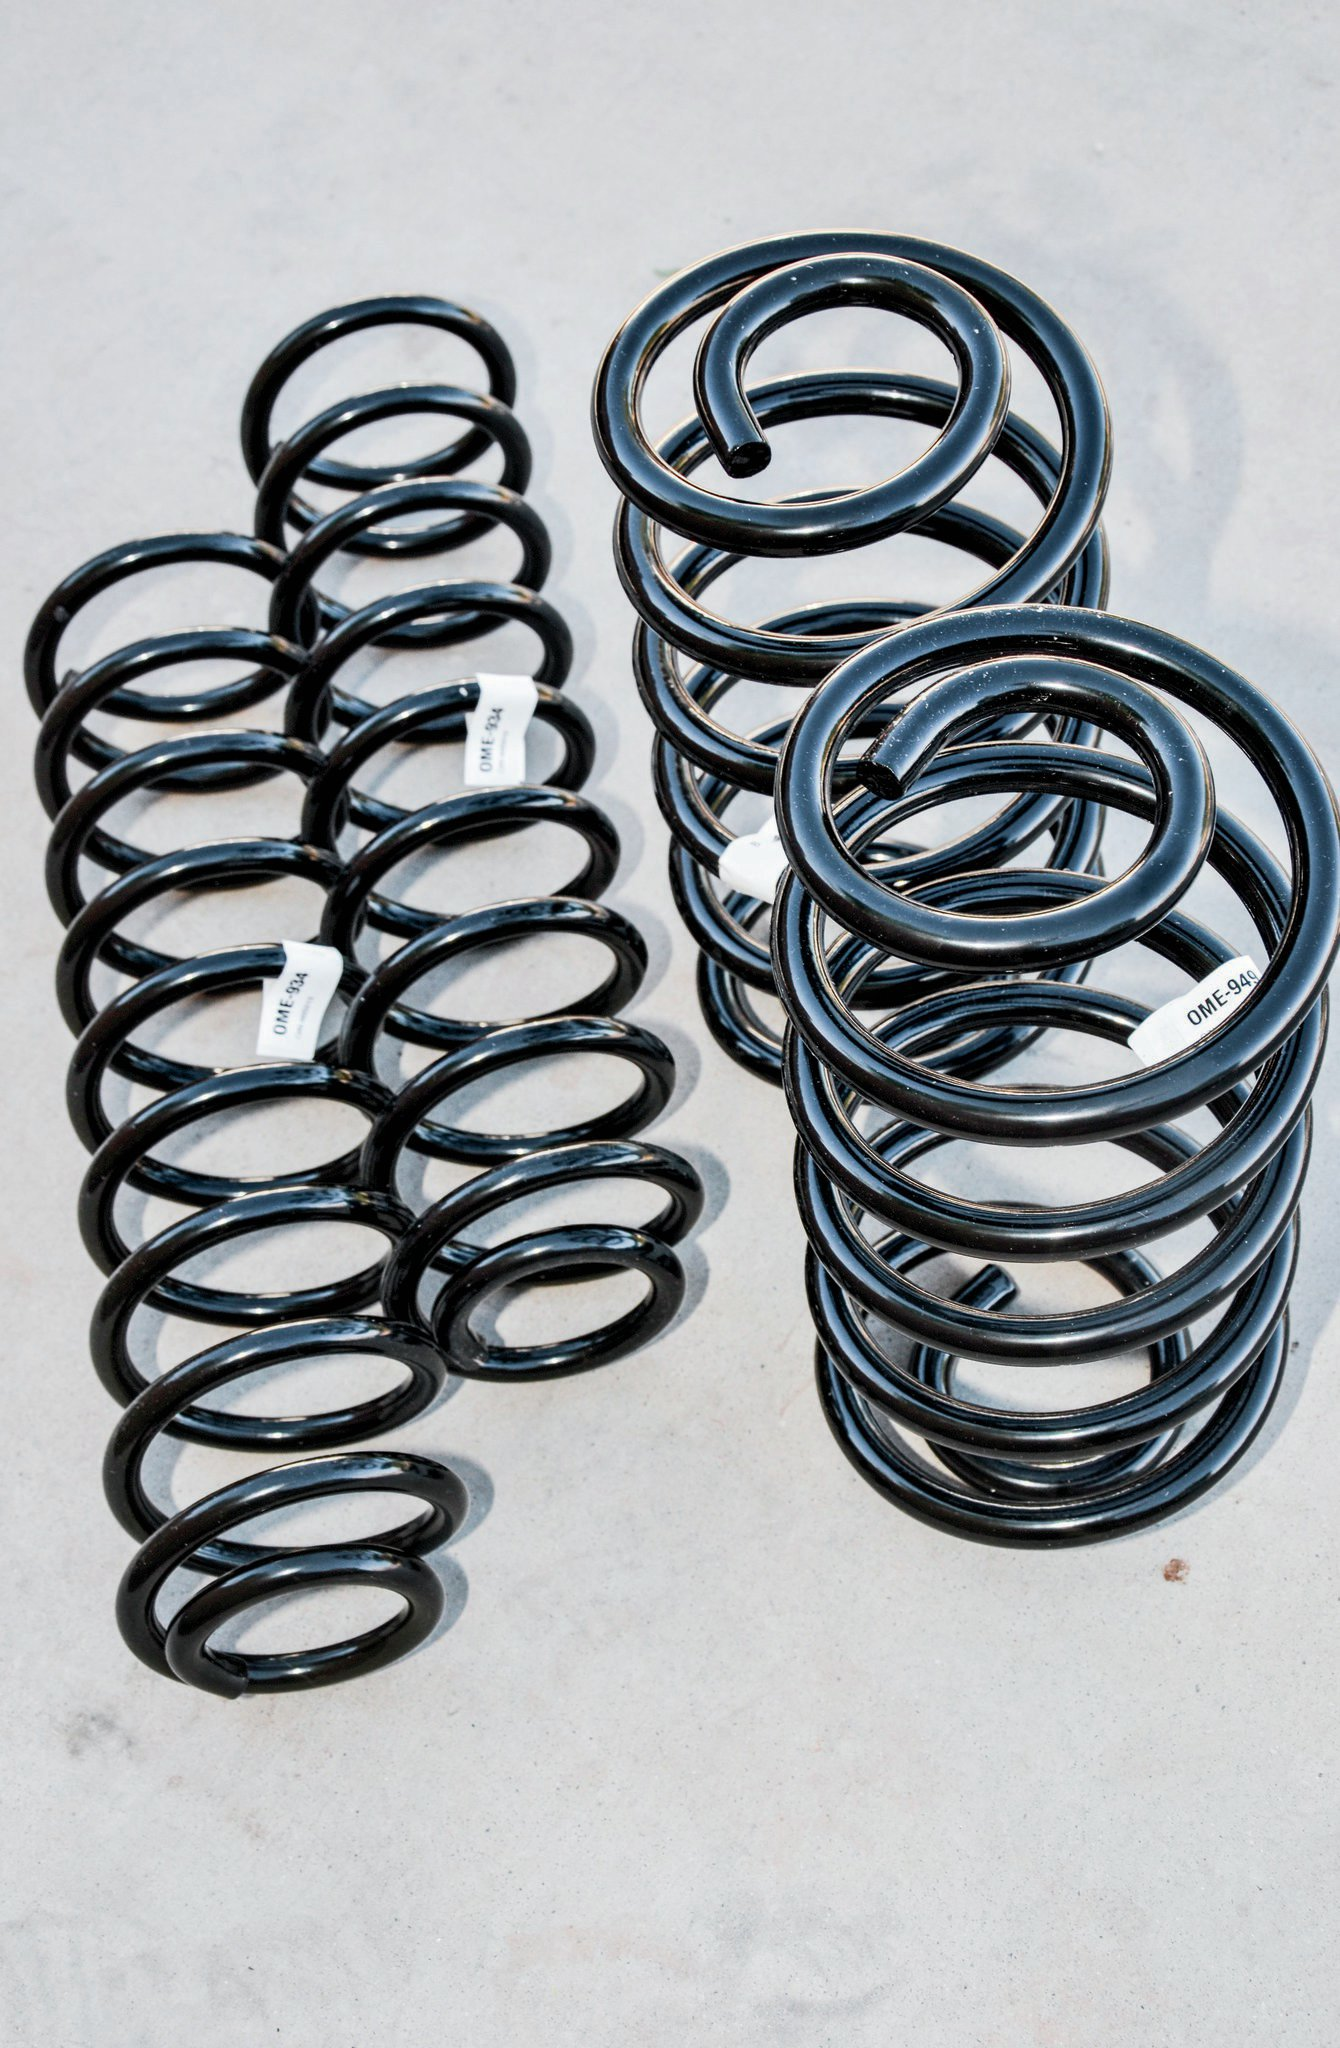 To add some boing in our front end, we are going to use a set of ZJ coils from Old Man Emu (PN 2934). These have a slightly higher spring rate and static height than Old Man Emu's 2-inch TJ springs. This should help deal with the heavier engine, axle, and large tires on our Willys. Out back, we are going to use Old Man Emu's 2-inch lift coils intended for an LJ (PN 2949). These springs also have a higher spring rate than the regular 2-inch lift OME TJ coils and a similar static height. If the springs don't provide enough lift or it's not level, we can always add coil spacers.